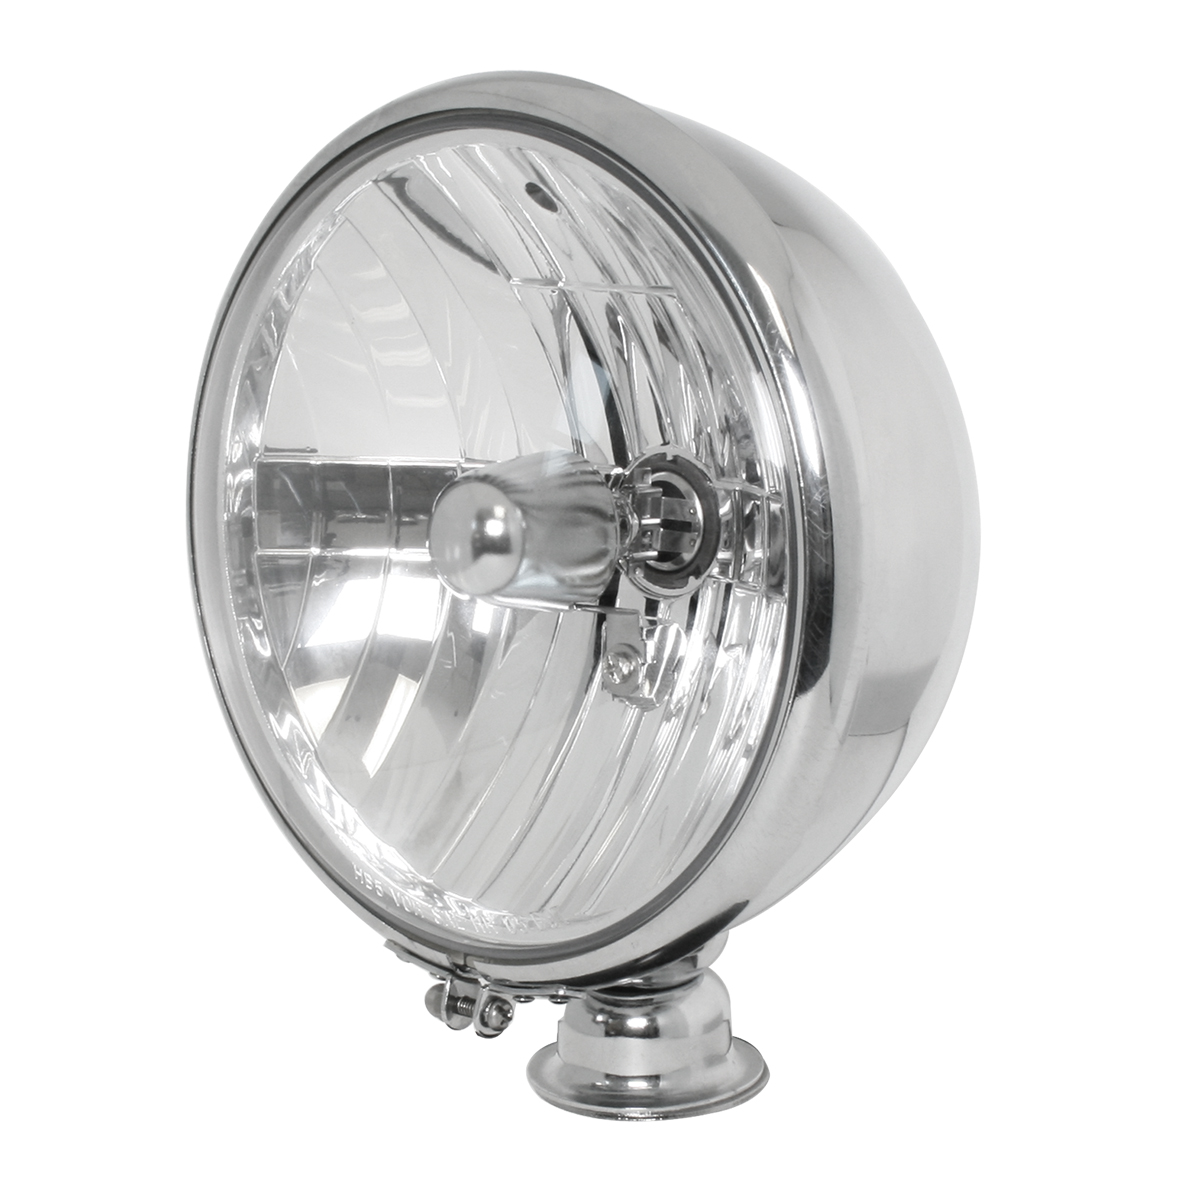 "#80619 Dietz Style 7"" Headlight with #9007 Halogen Bulb"